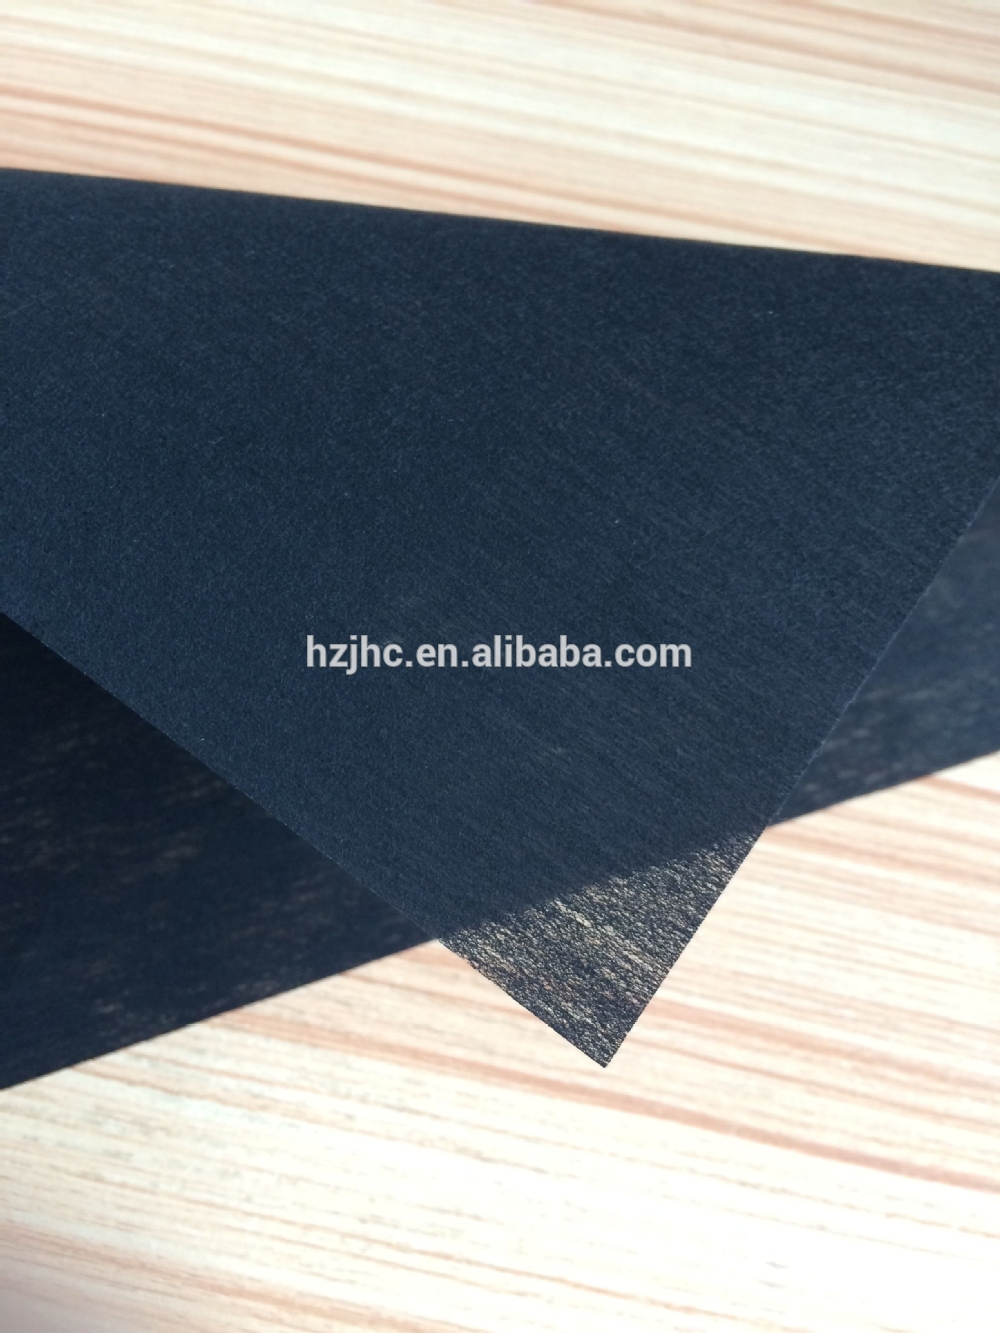 Good water absorbent polyester impregnated nonwoven